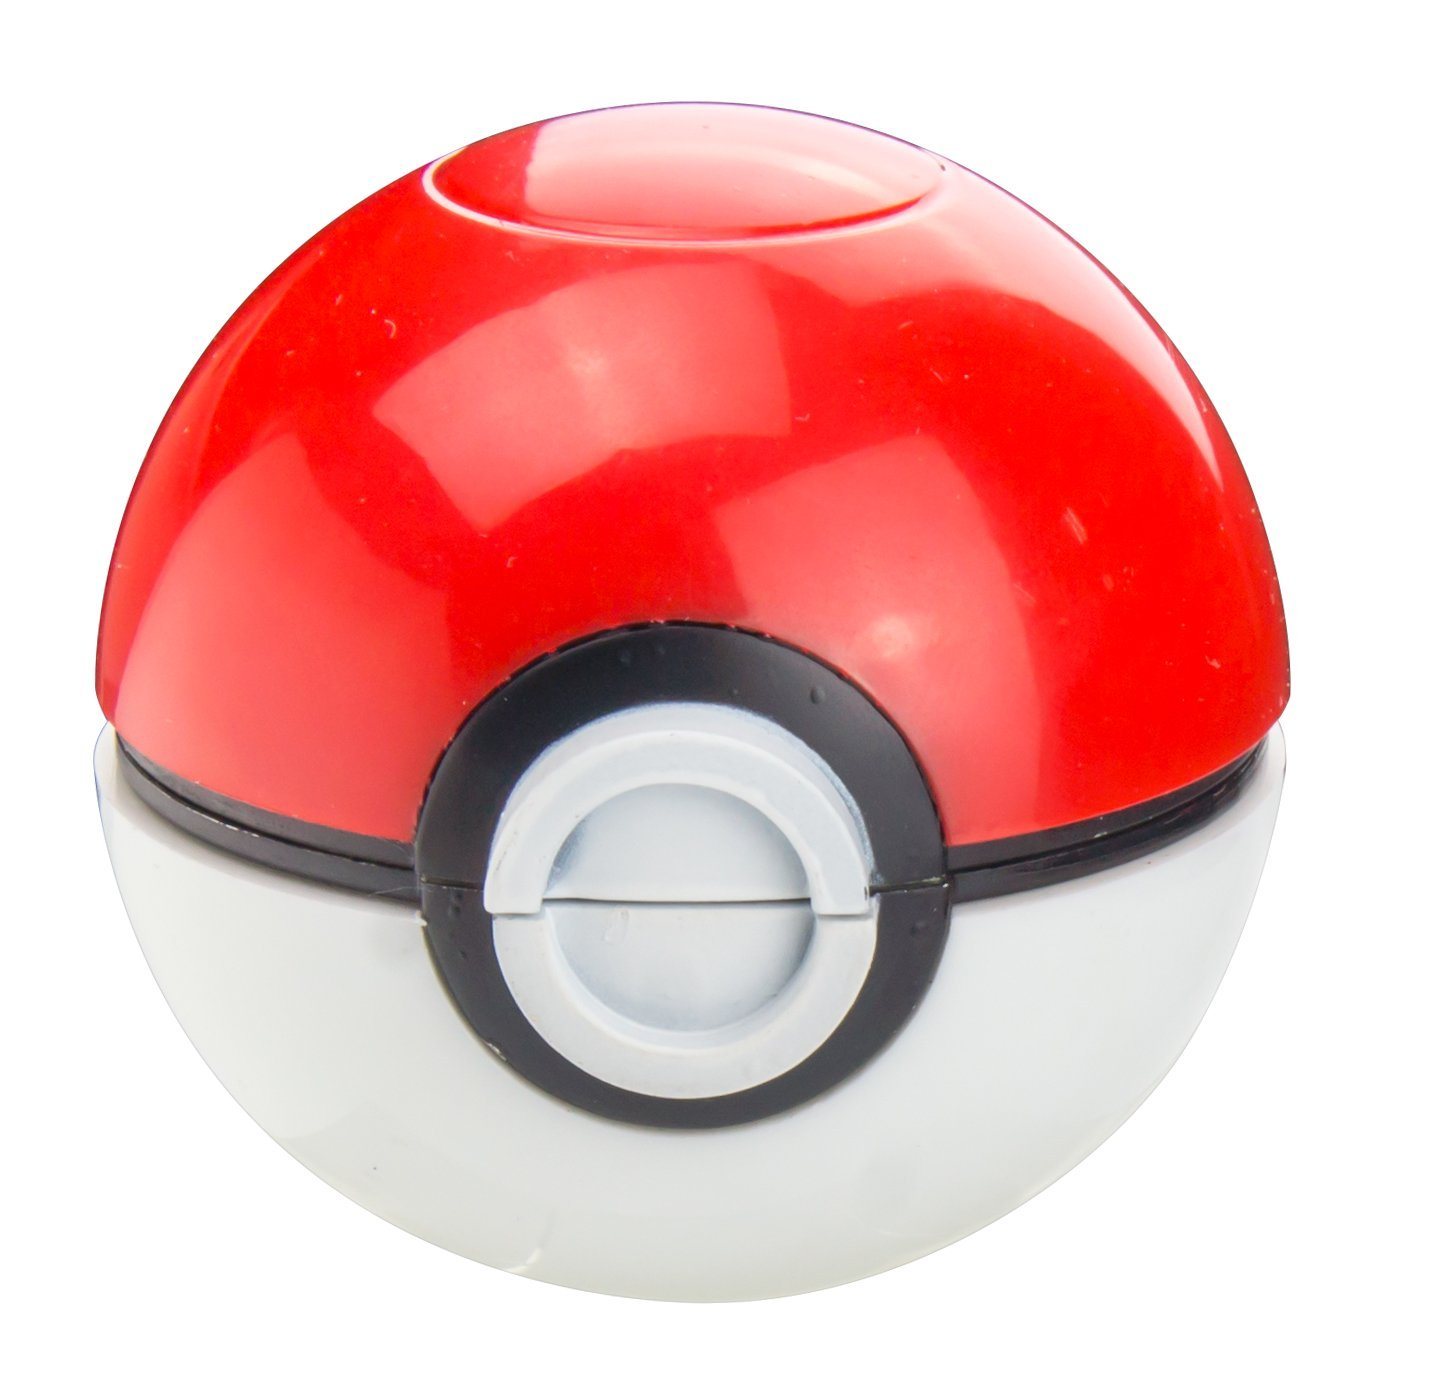 Pokeball Manual Hand Kitchen Grinder Life Changing Products